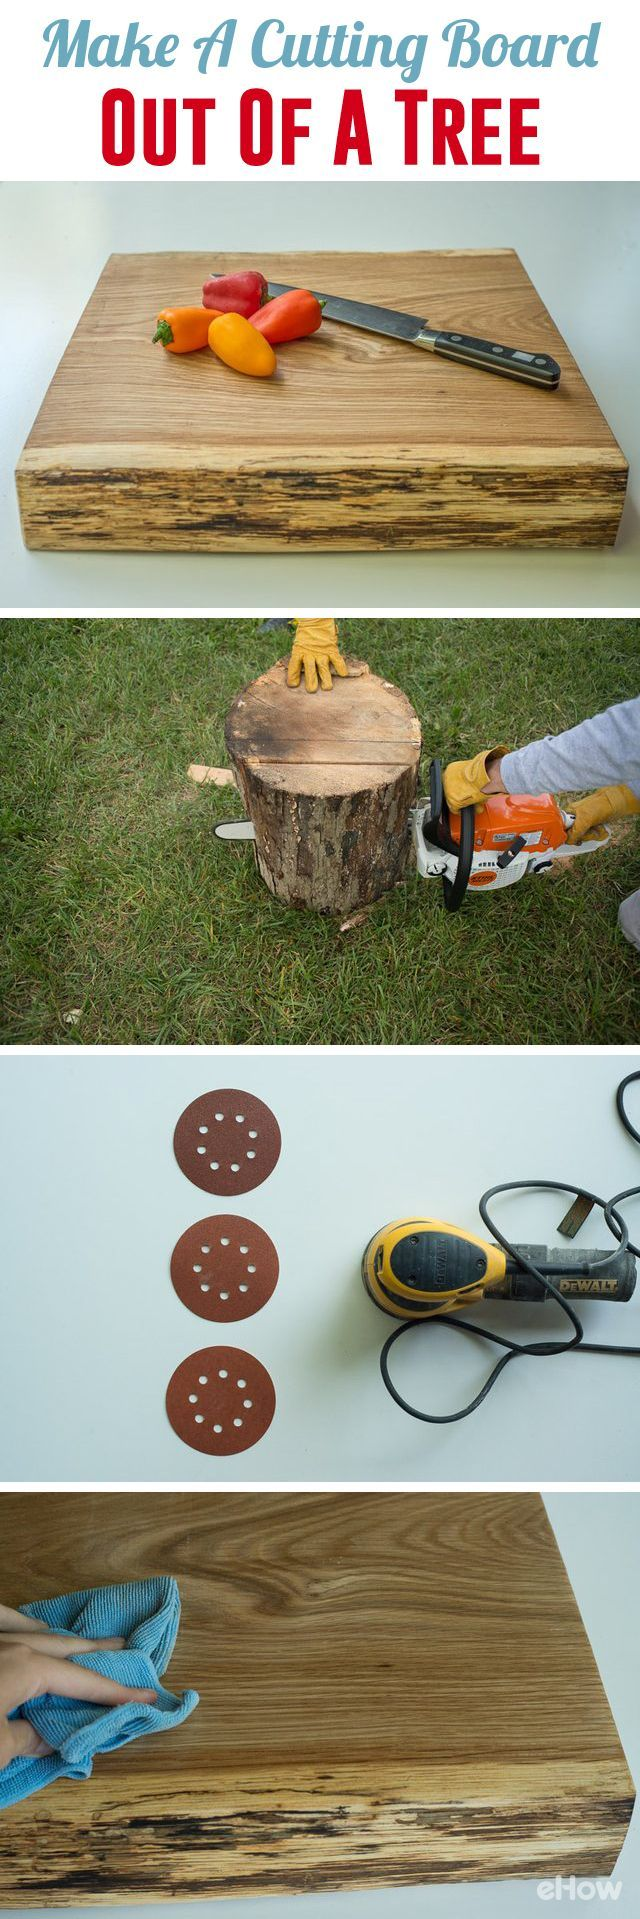 how to make a cutting board out of a tree diy ideas pinterest